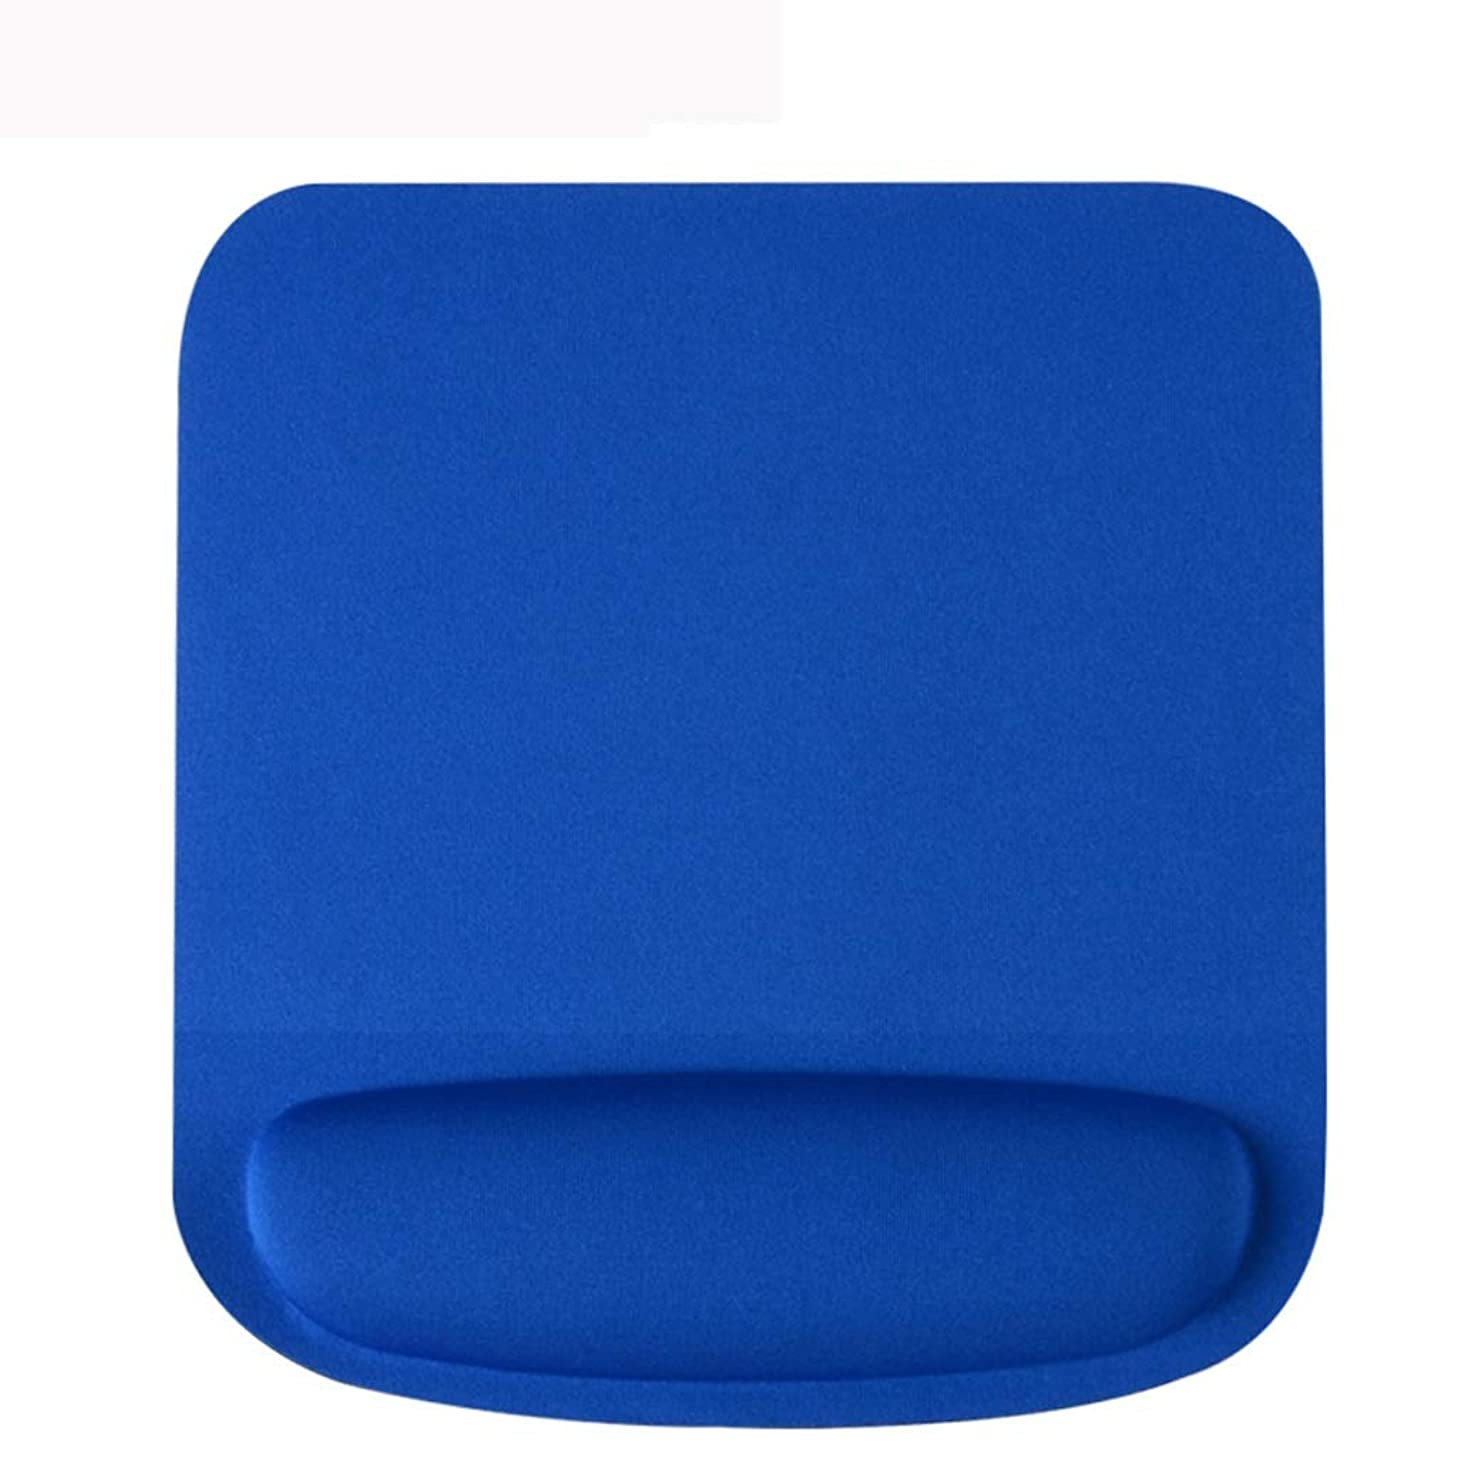 LLSDLS Memory Cotton Computer Game Mouse Pad Wrist Pad Padded Simple Office 3D Stereo Wrist Pad Rubber Boys and Girls Mouse Pad (Color : Blue)